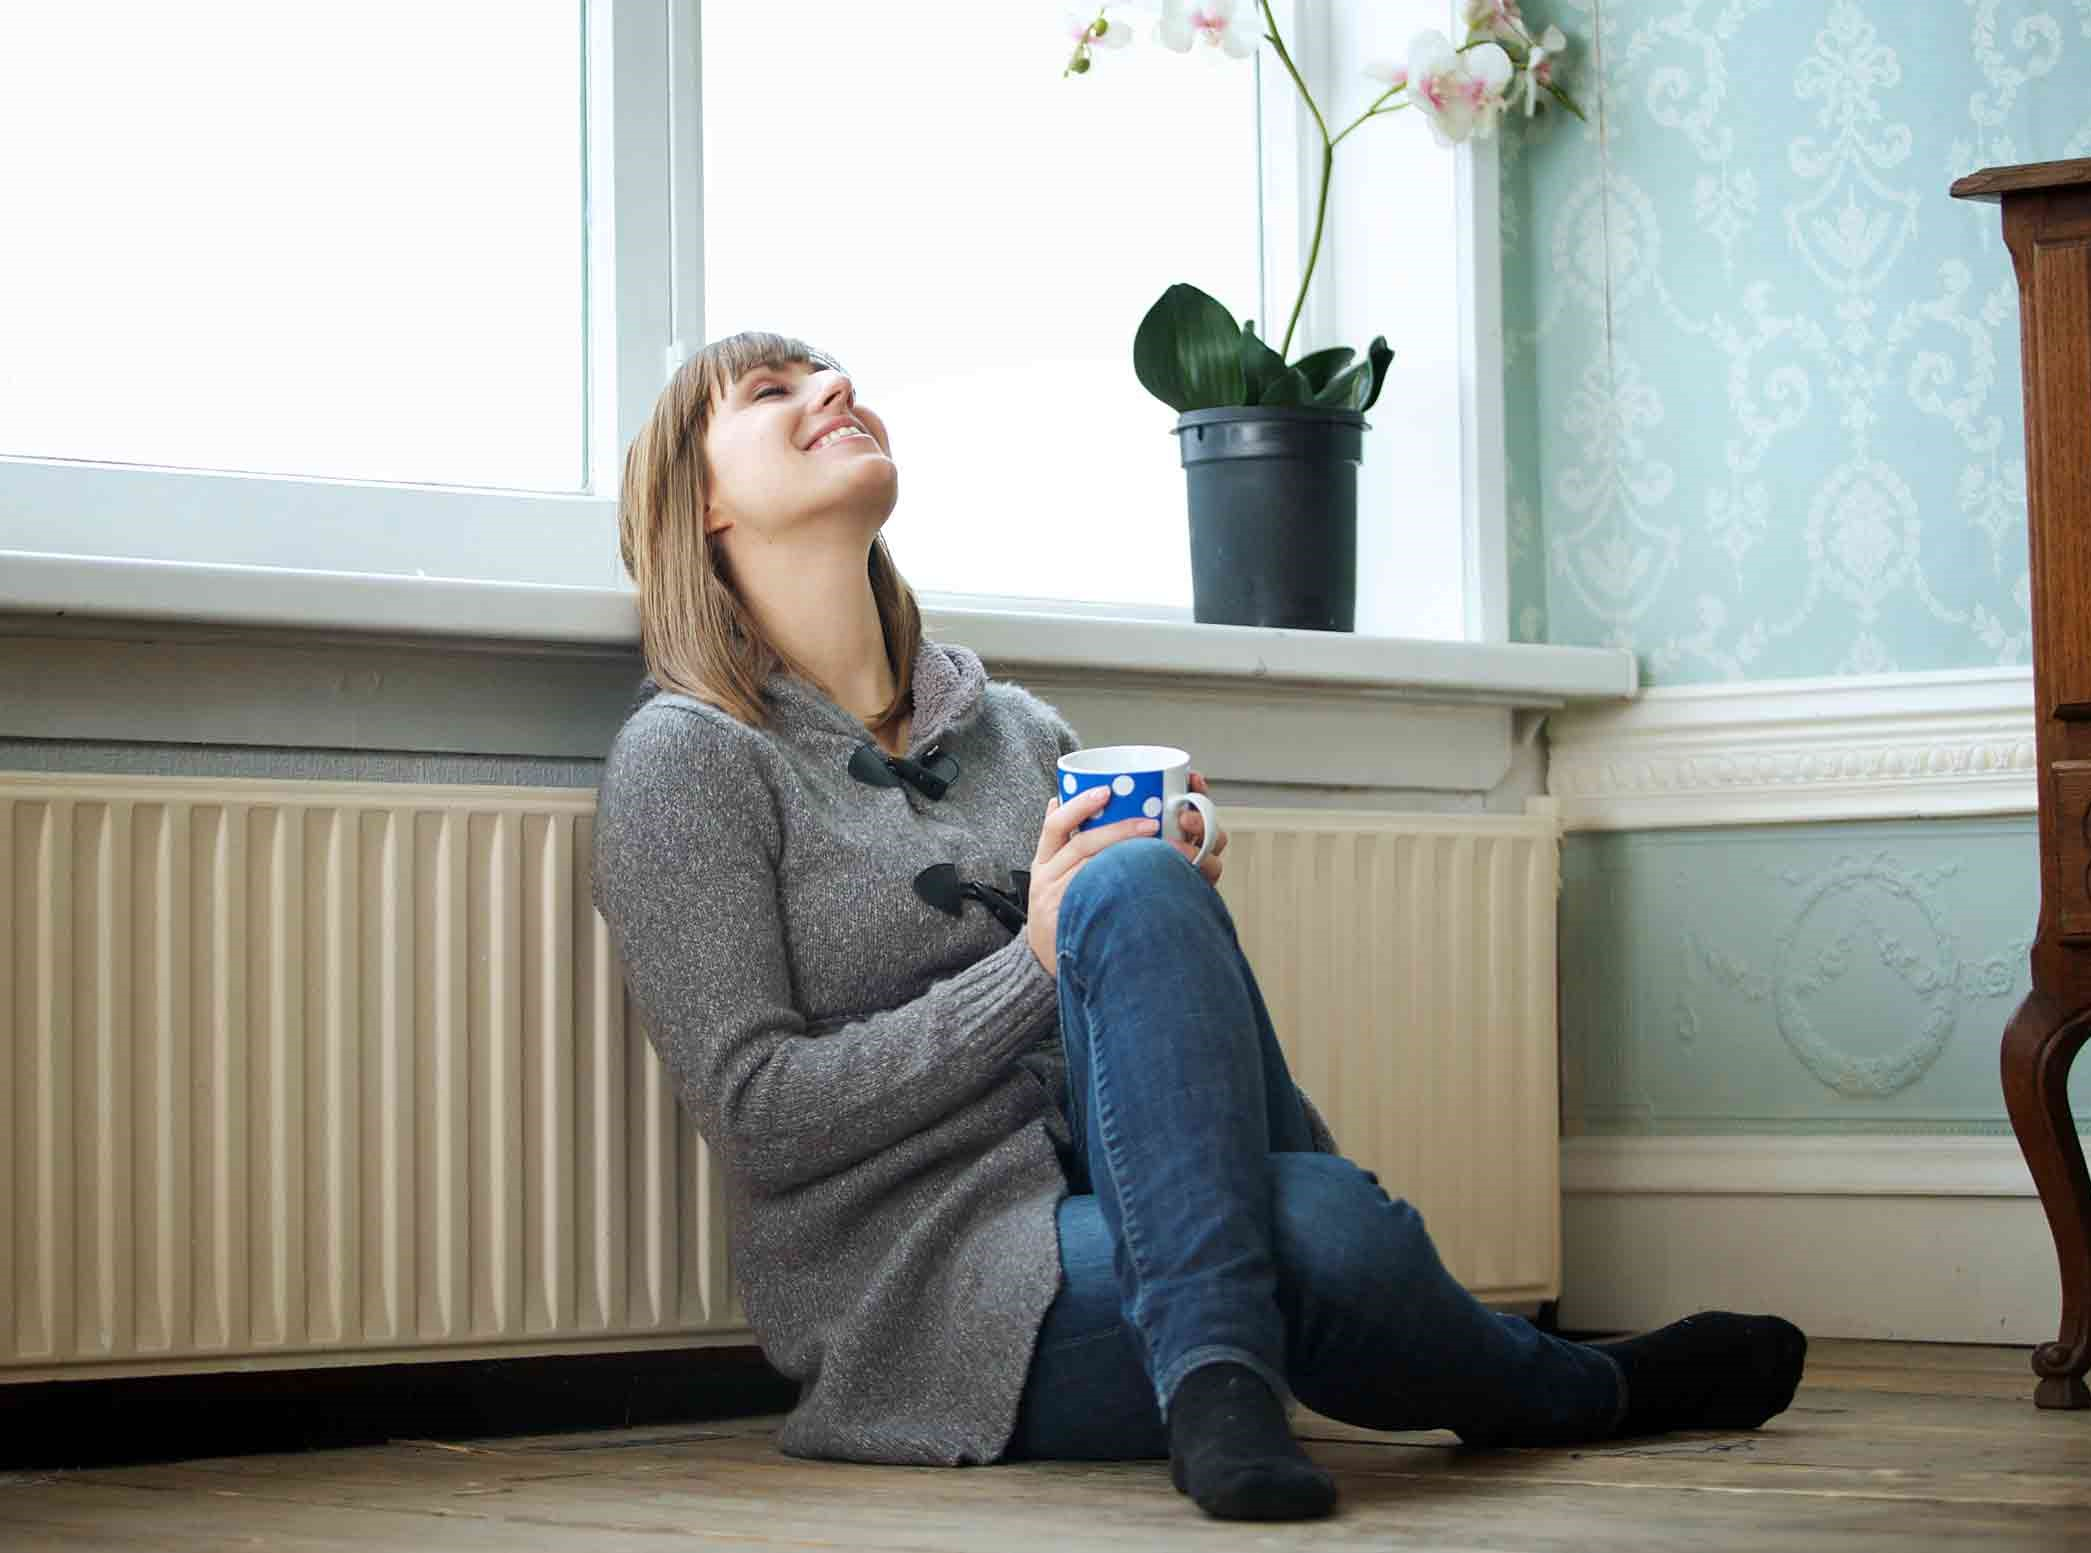 Glacier Refrigeration - Woman enjoys residential heating in Melbourne